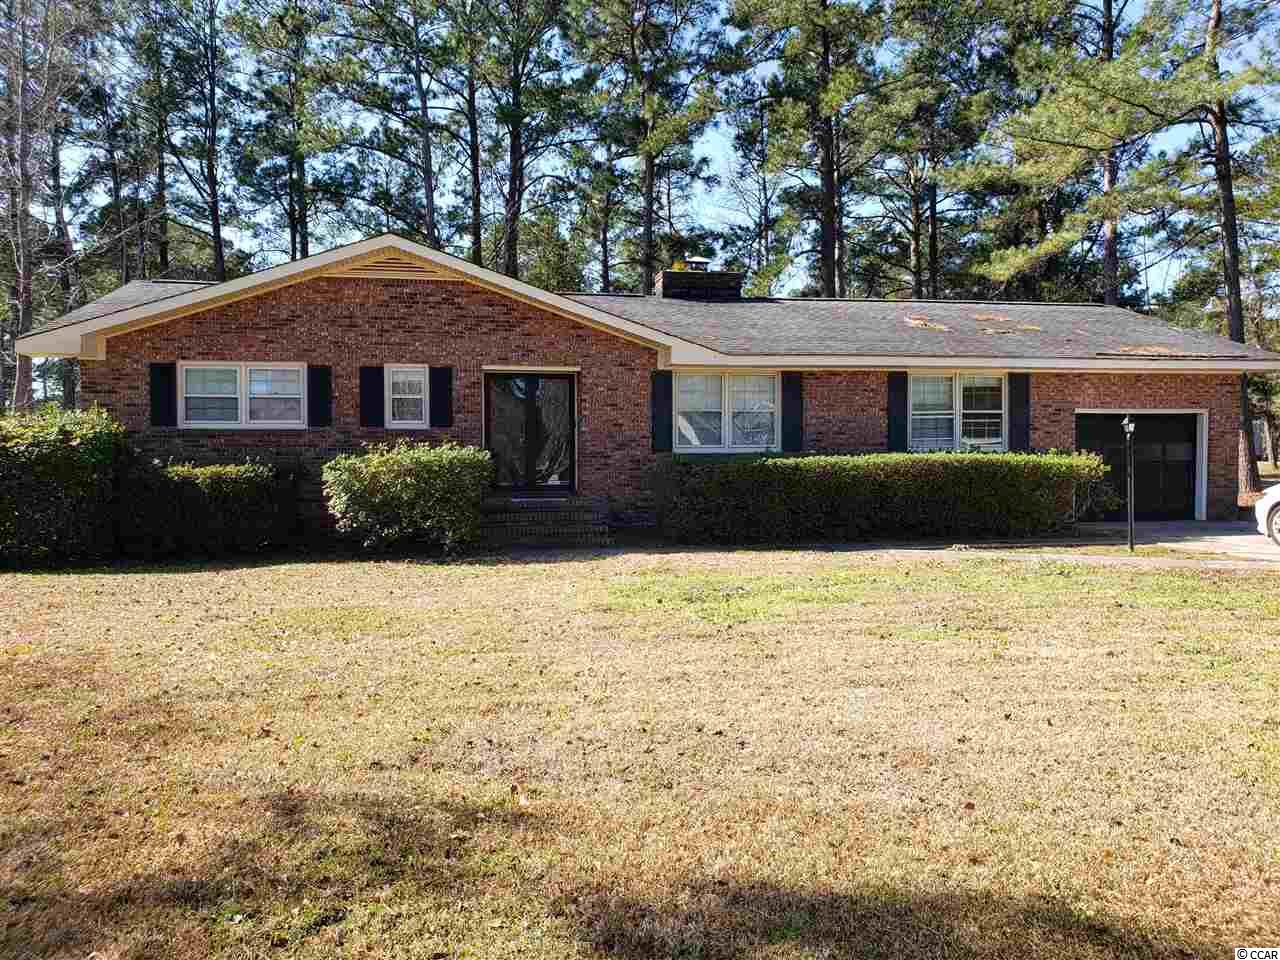 Motivated seller bring offers. 3 bedroom 2 bath brick home located in Wedgefield Plantation just outside of Georgetown. Has a large back yard. Carolina room with a golf course view. Access to Black River via community boat ramp and dock. Not far from the Historic District, shopping and dining on the waterfront. Square footage is approximate and not guaranteed. Buyer is responsible for verification.